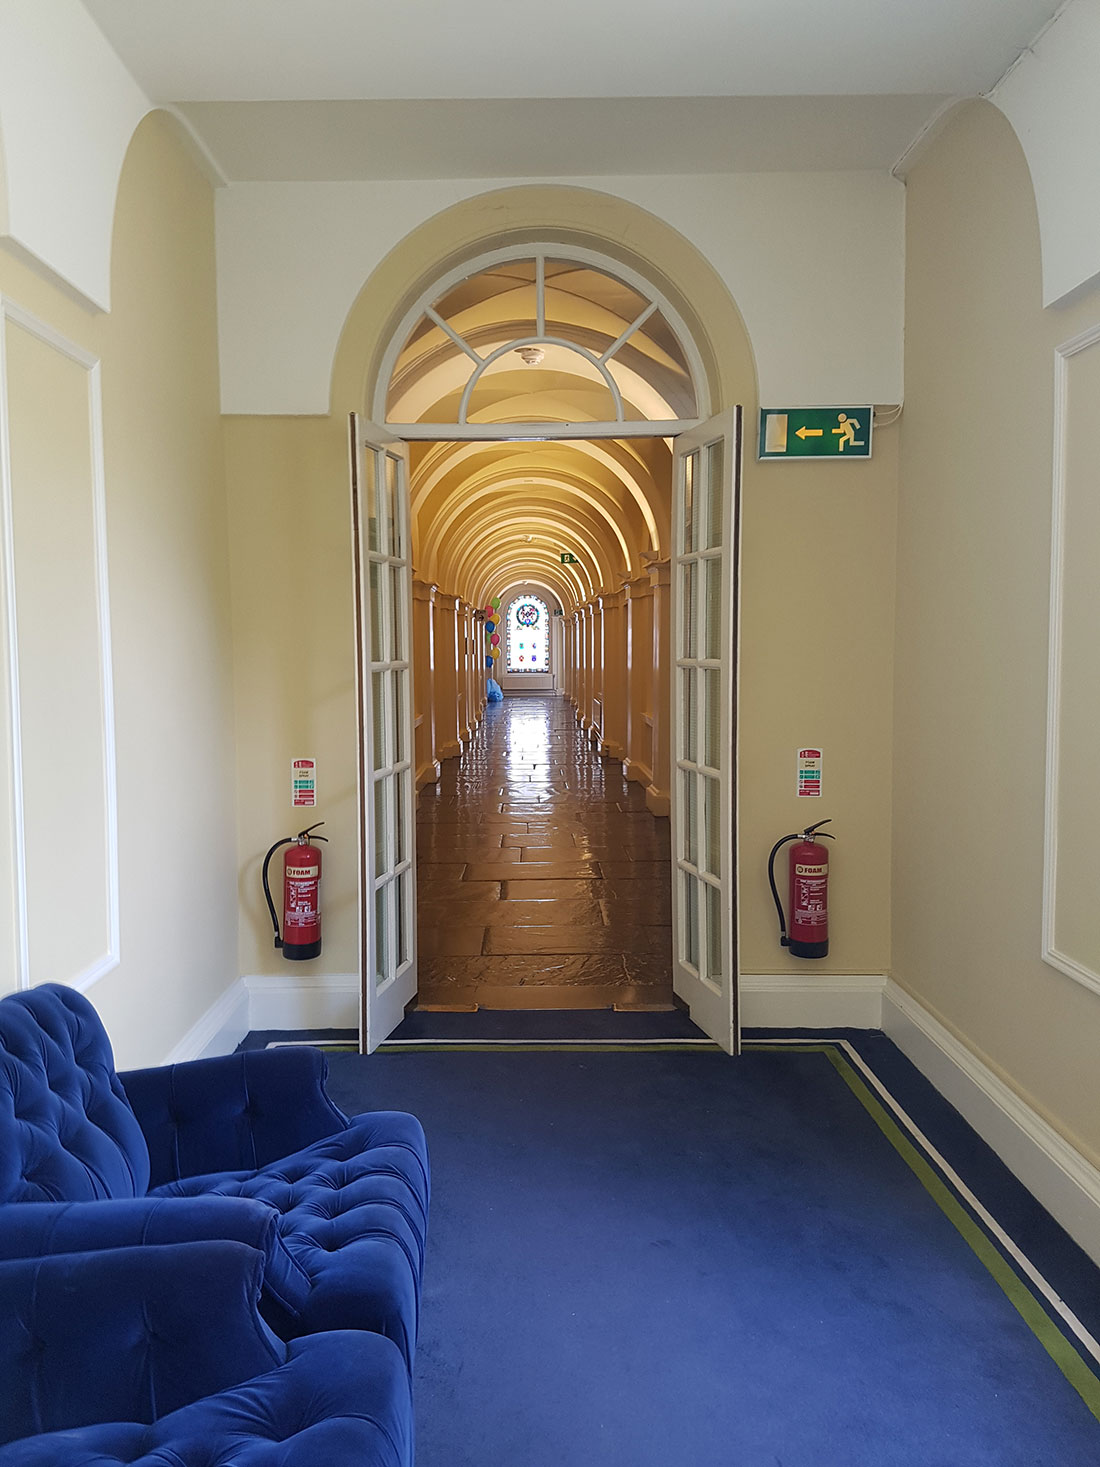 Lighting in the Corridors of the Law Society Ireland